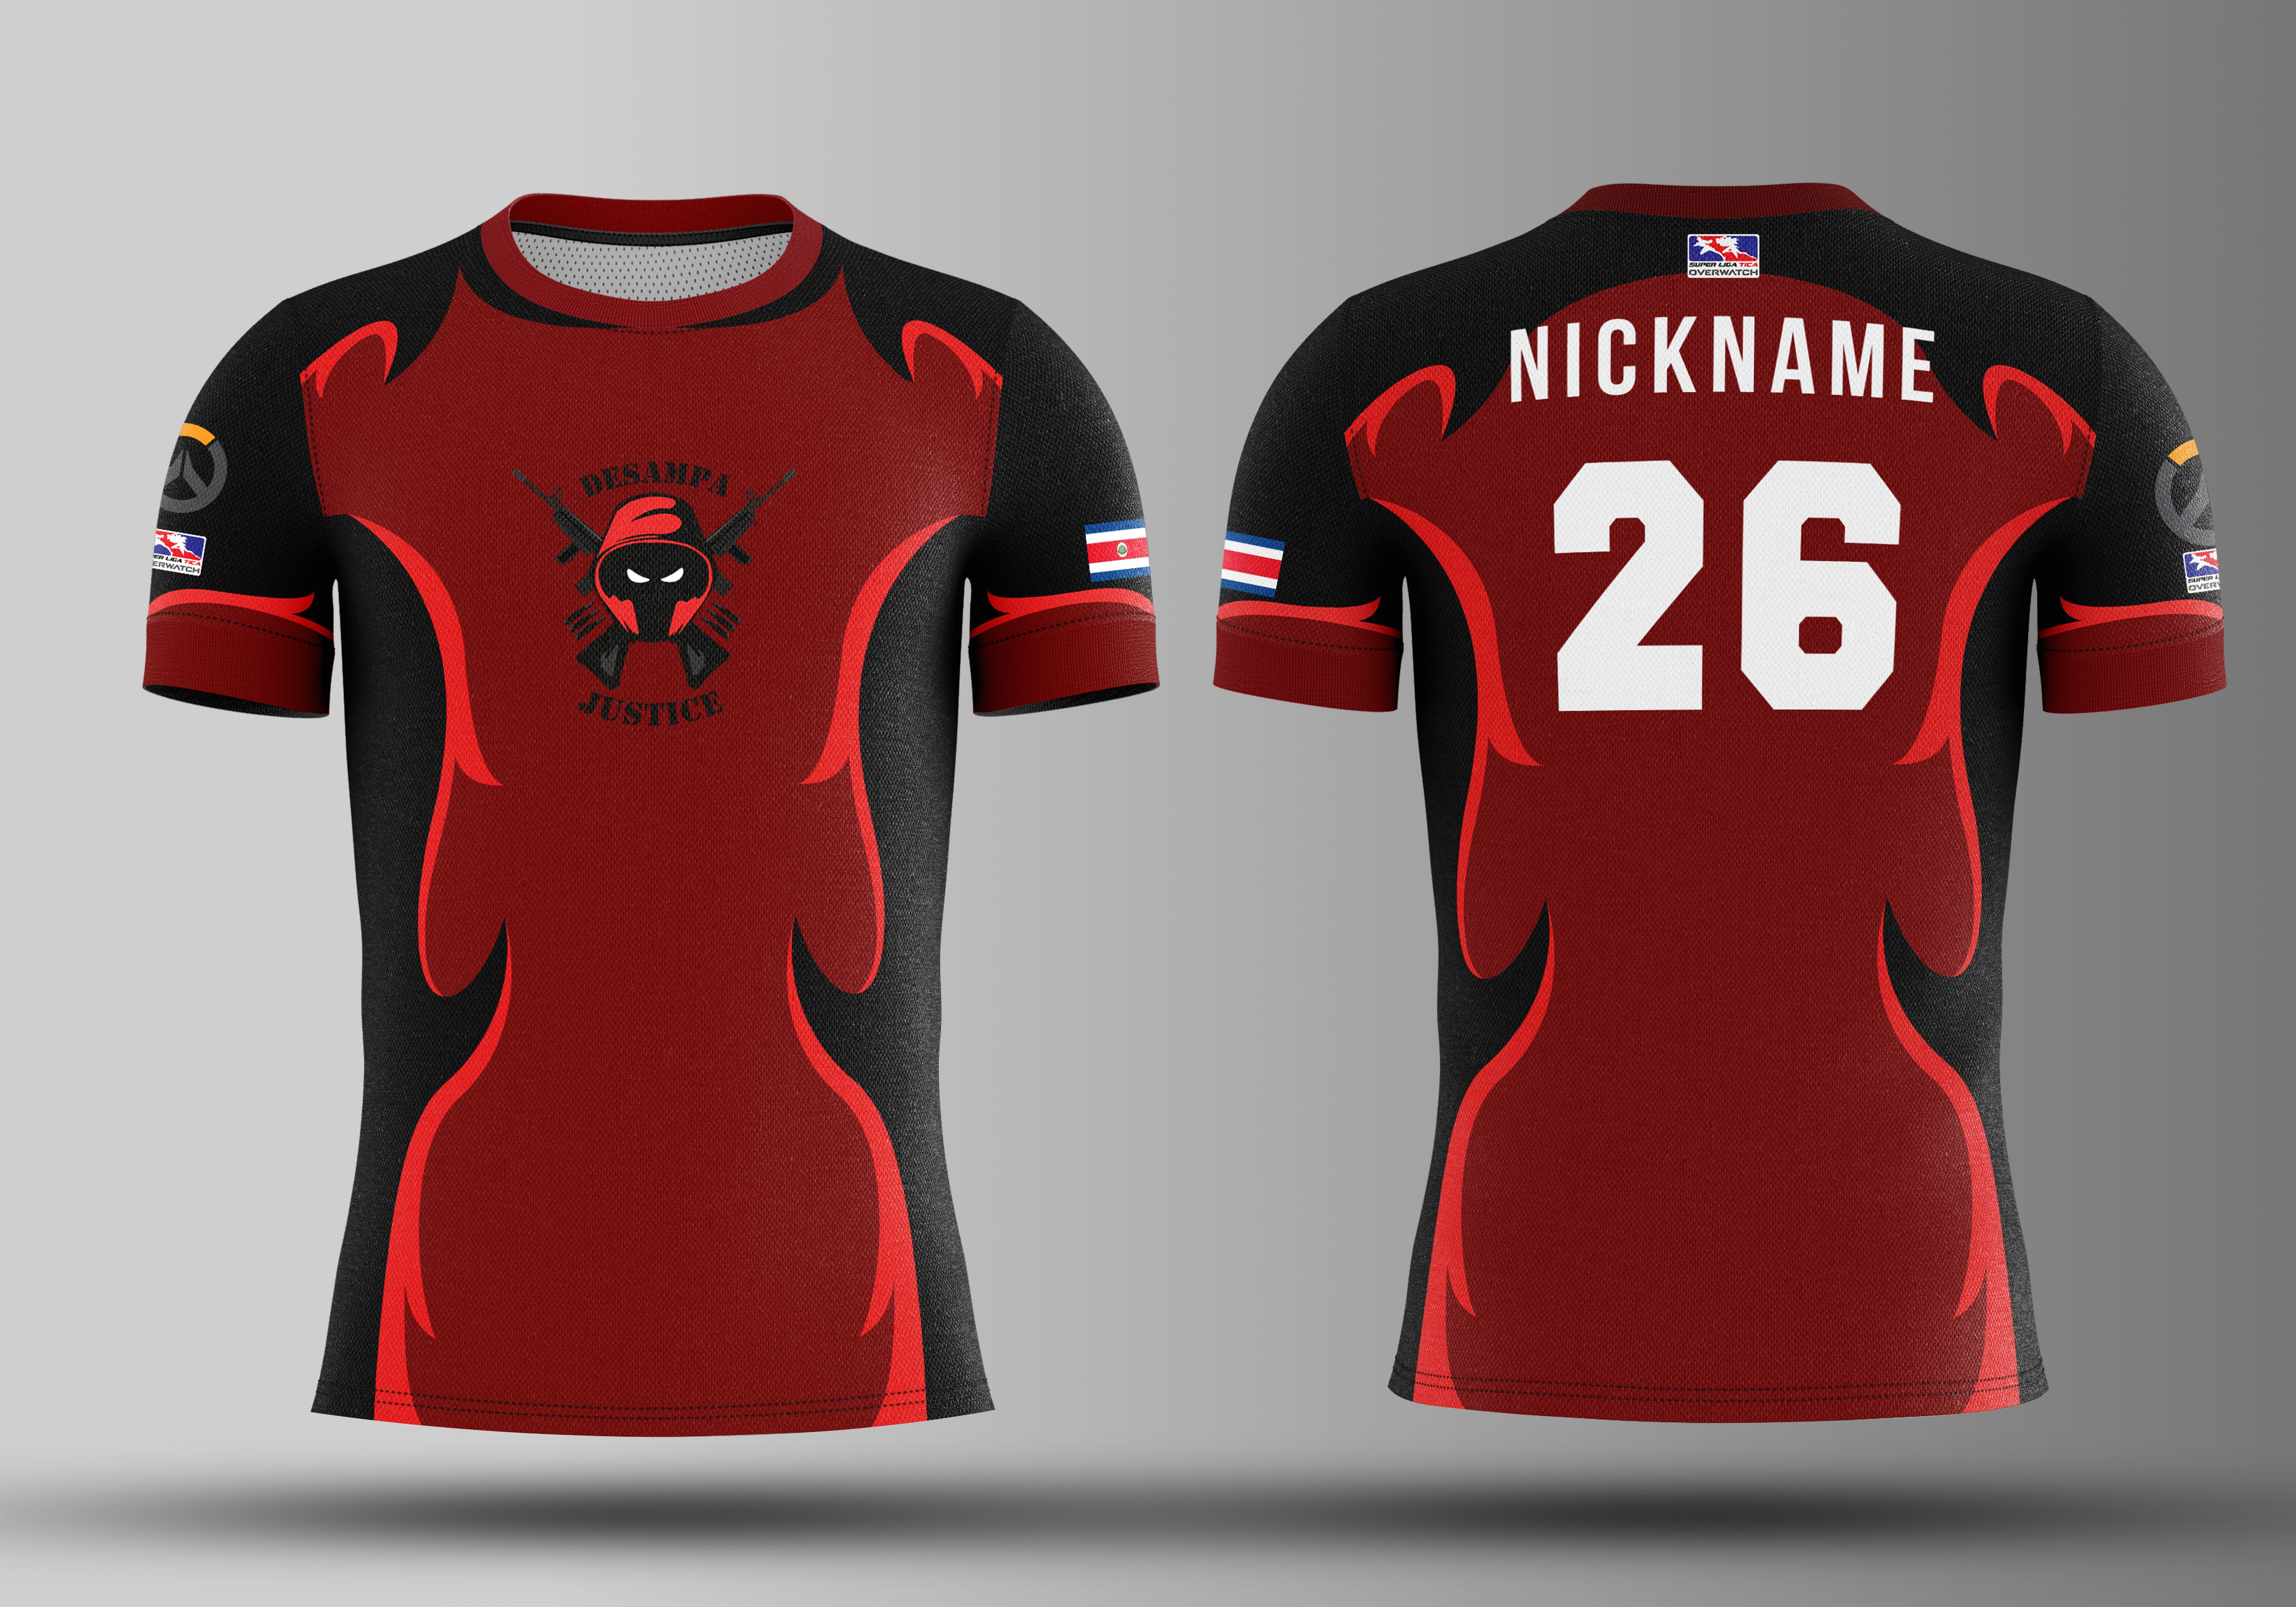 Under21 I Will Design Jersey For Esports Soccer Etc In 24 Hours For 10 On Fiverr Com In 2020 Sport Shirt Design Grunt Style Shirts Sports Shirts